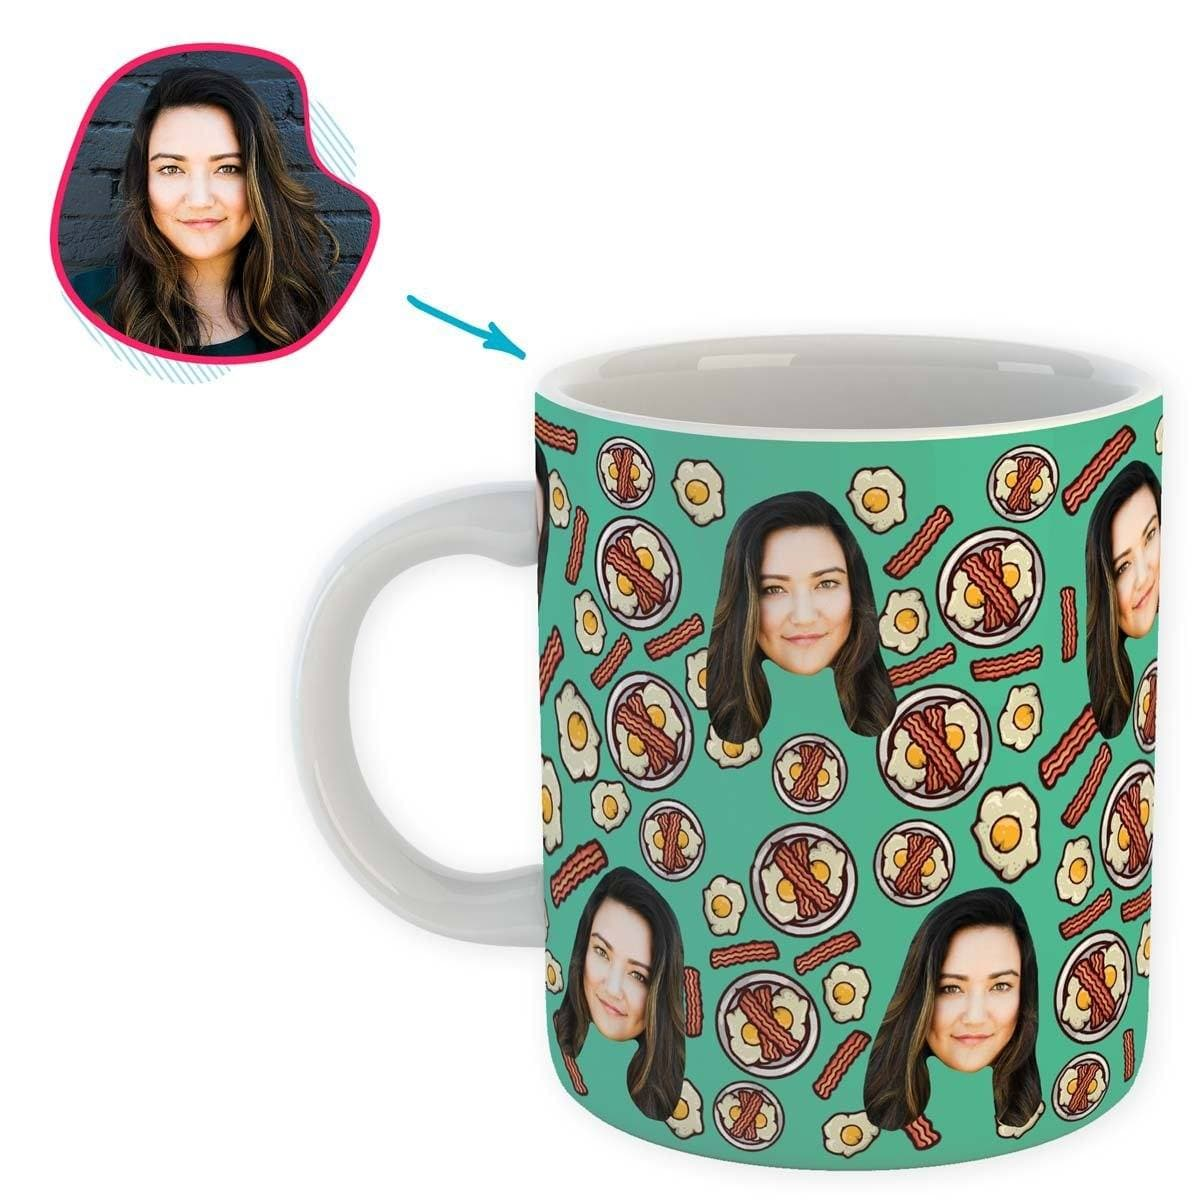 mint Bacon and Eggs mug personalized with photo of face printed on it